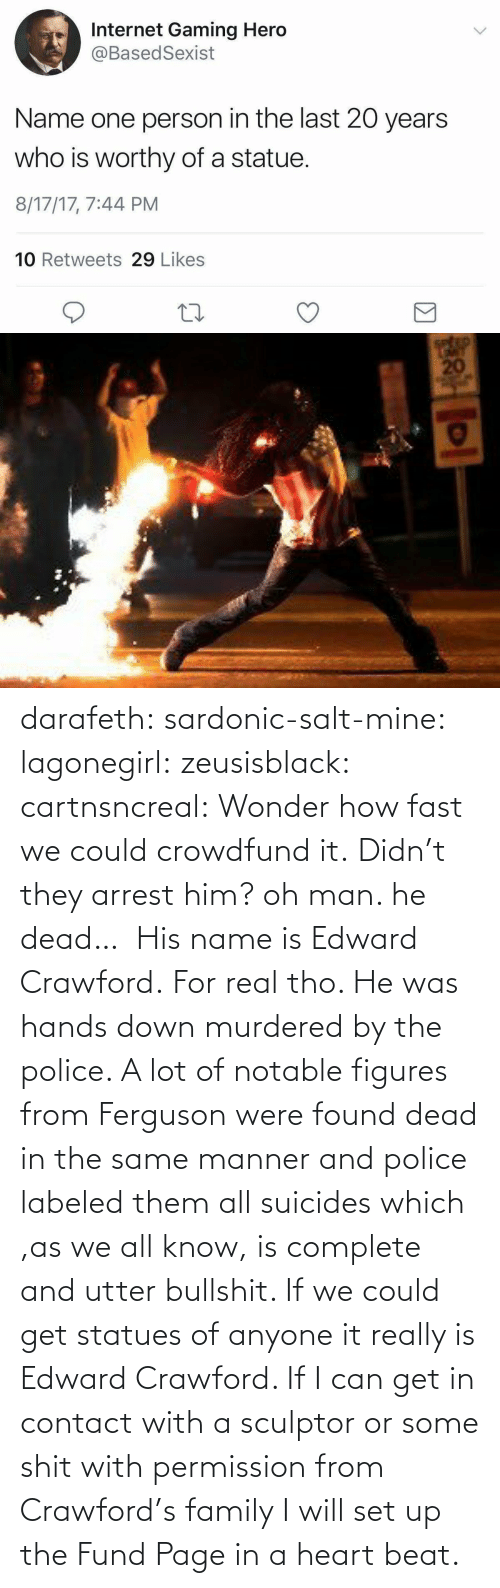 Police: darafeth: sardonic-salt-mine:  lagonegirl:  zeusisblack:  cartnsncreal:   Wonder how fast we could crowdfund it.    Didn't they arrest him?  oh man. he dead…   His name is Edward Crawford.   For real tho. He was hands down murdered by the police. A lot of notable figures from Ferguson were found dead in the same manner and police labeled them all suicides which ,as we all know, is complete and utter bullshit.  If we could get statues of anyone it really is Edward Crawford. If I can get in contact with a sculptor or some shit with permission from Crawford's family I will set up the Fund Page in a heart beat.